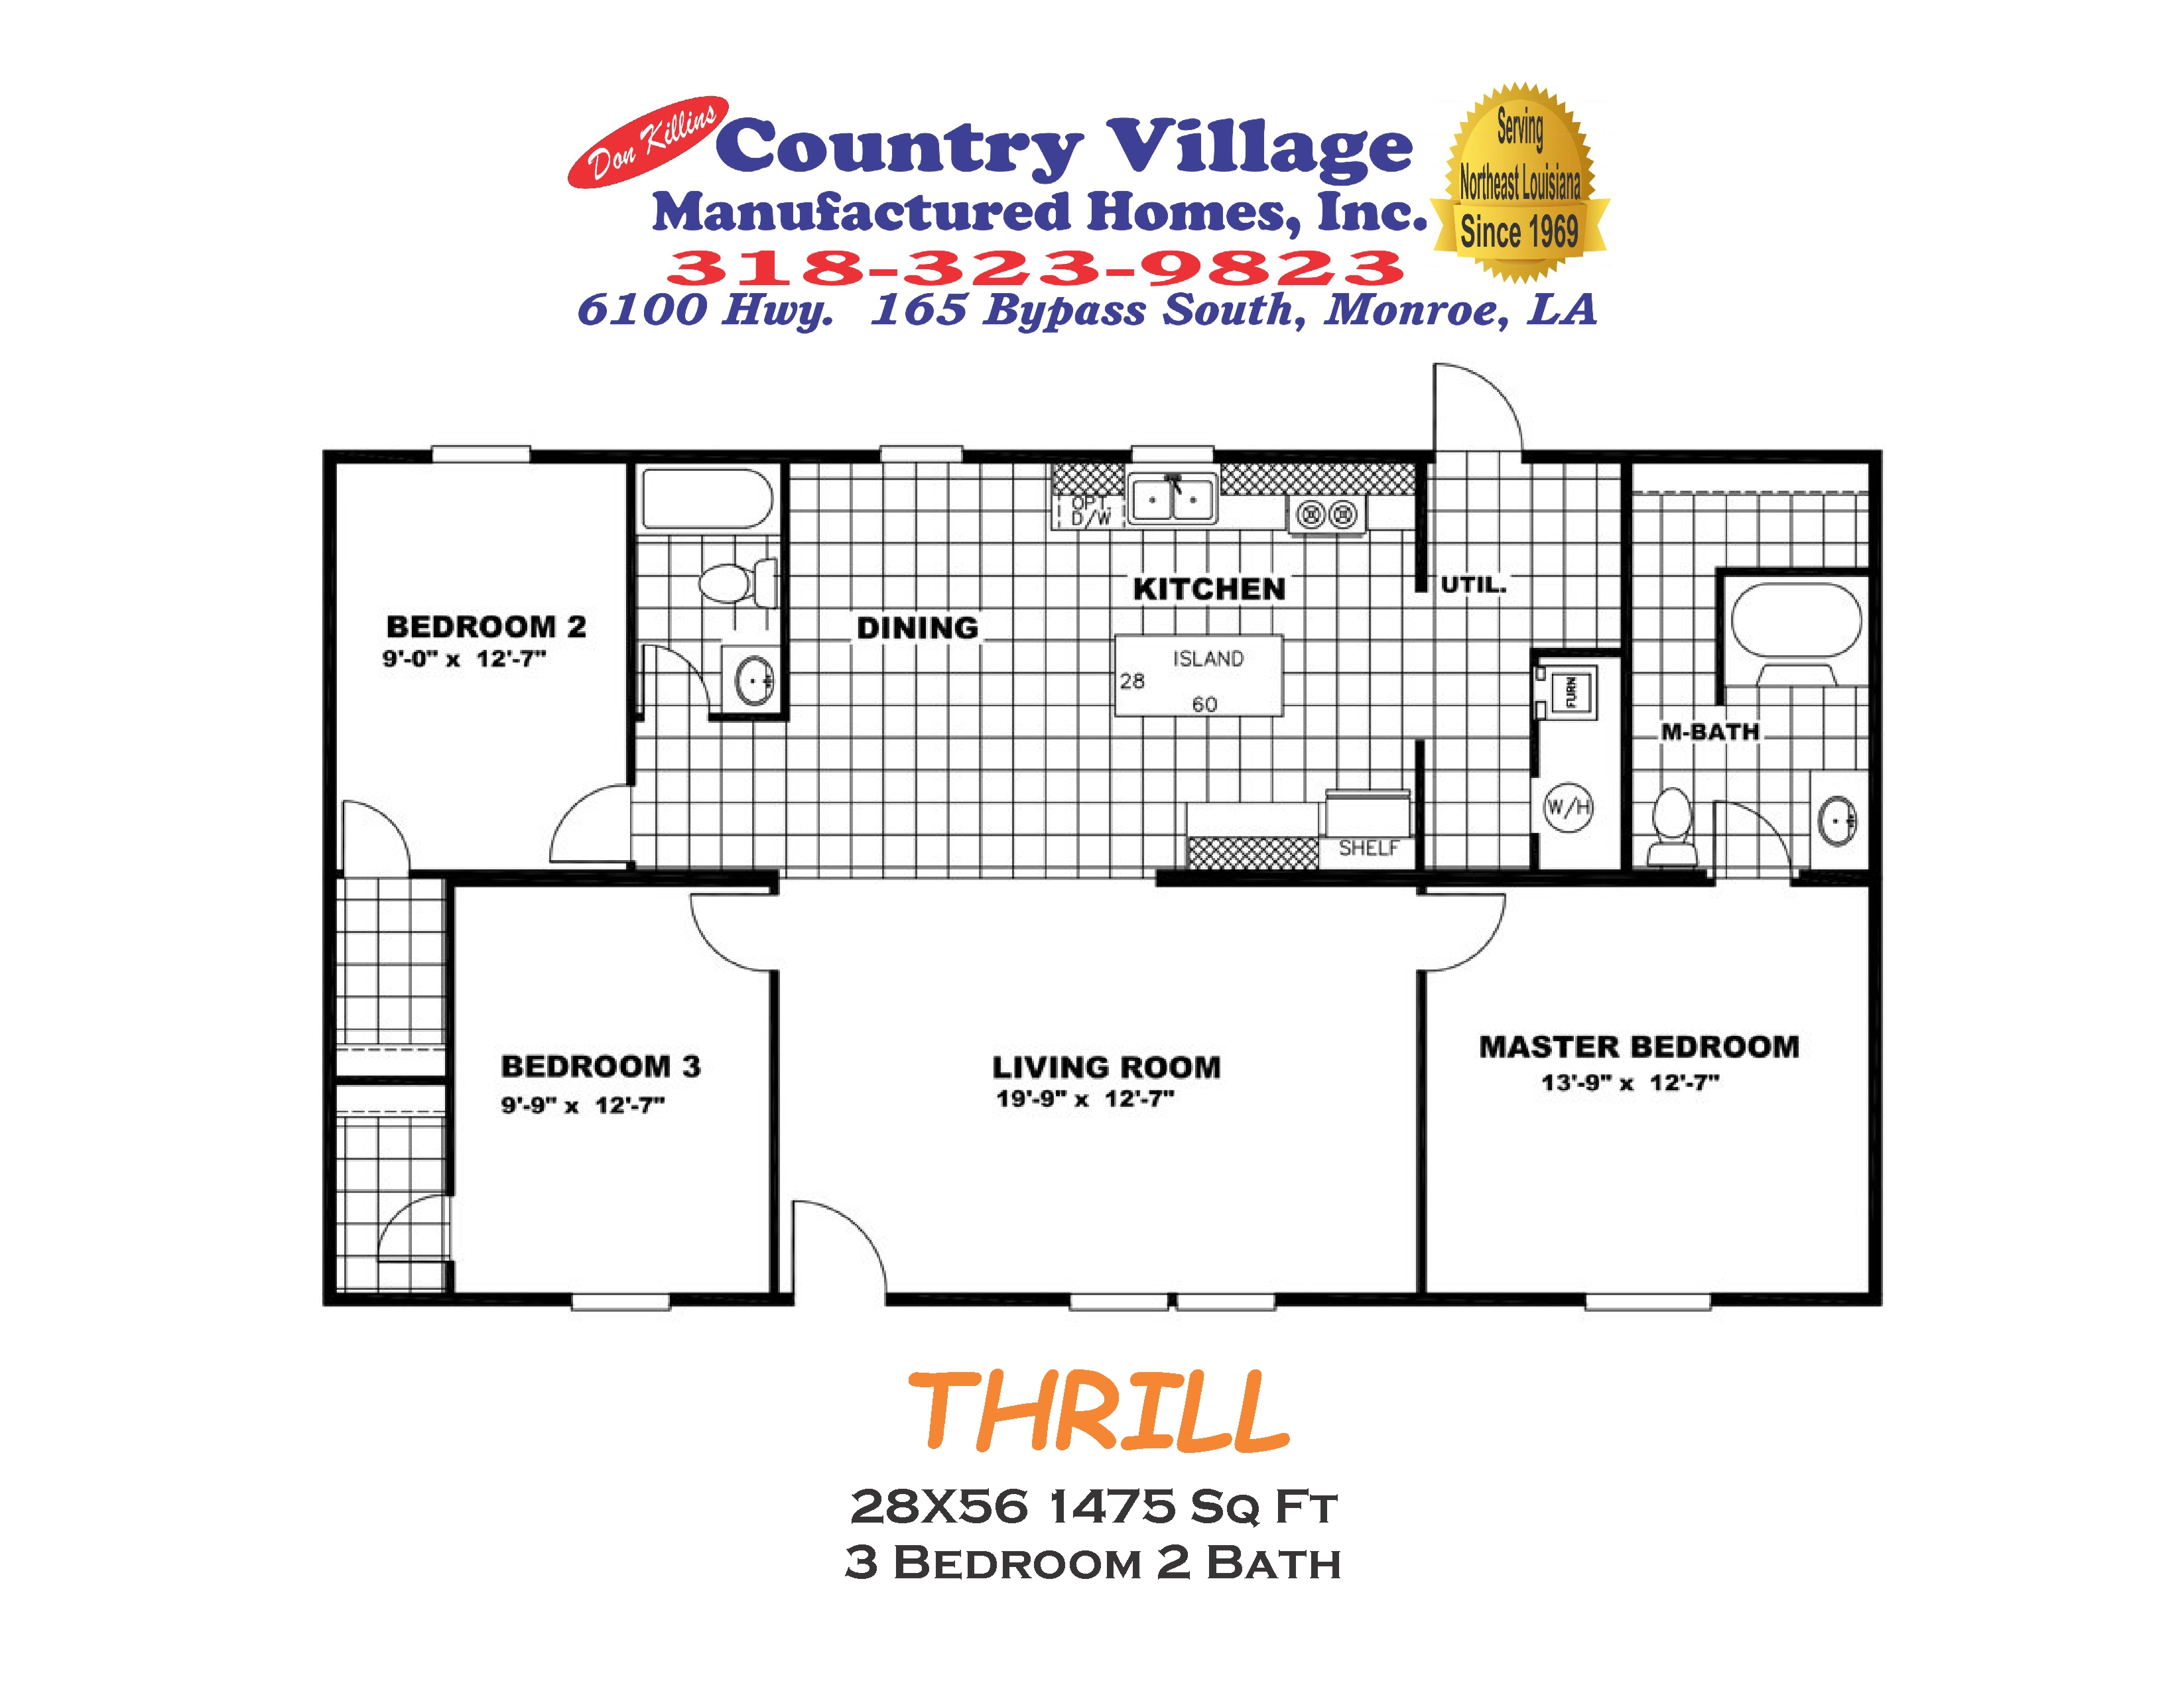 THRILL 28X56 1475 sq ft 3+2